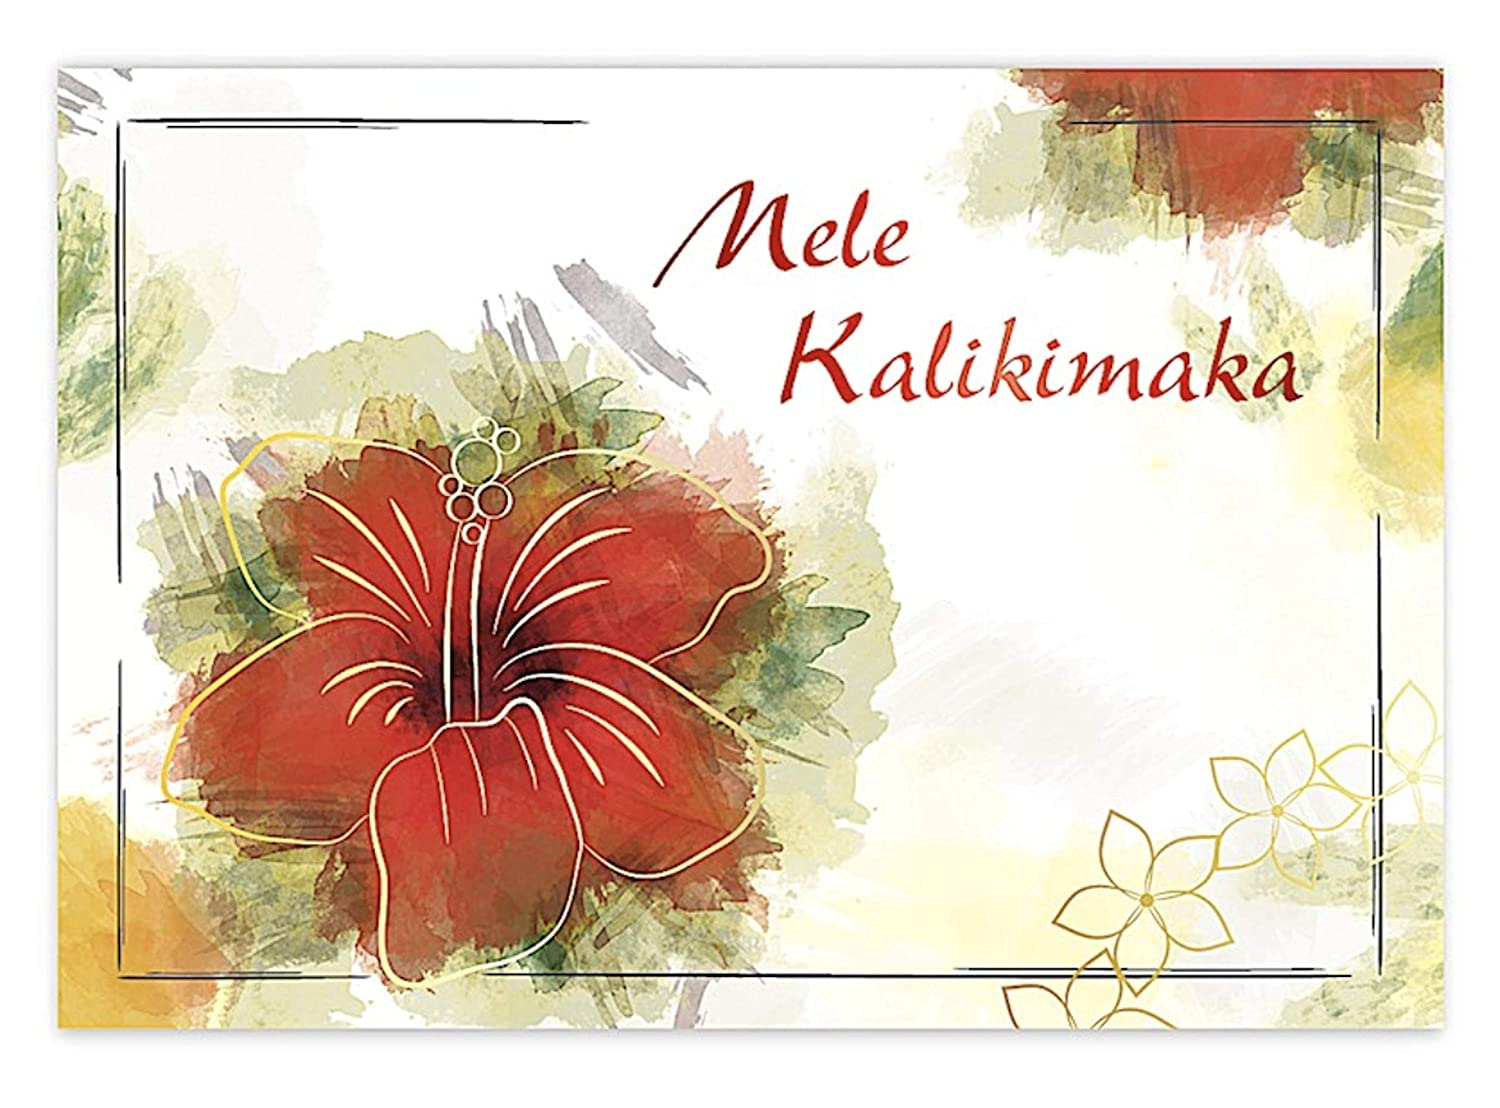 Amazon.com : Hawaiian Hibiscus Kalikimaka Christmas Cards : Office ...